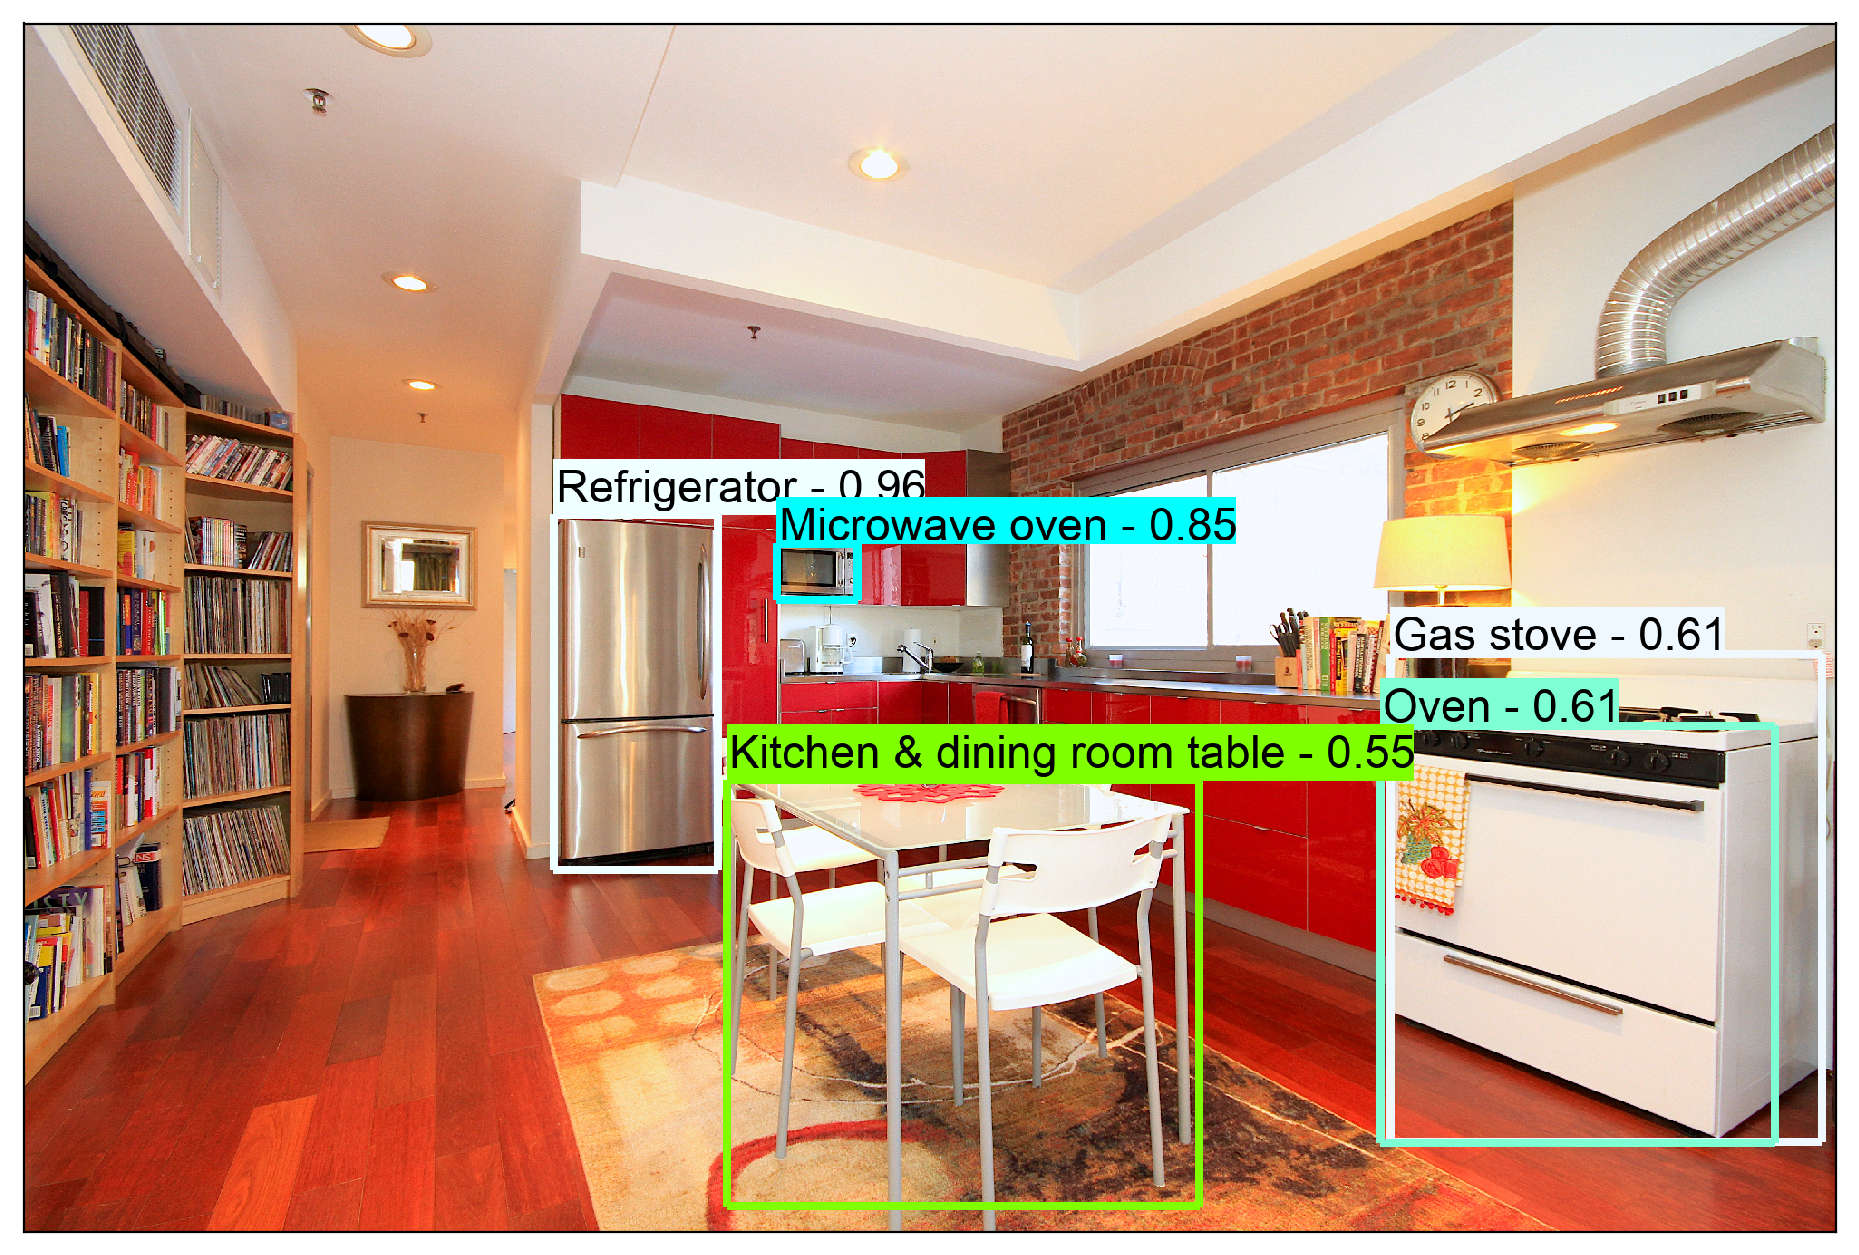 Amenity Detection and Beyond — New Frontiers of Computer Vision at